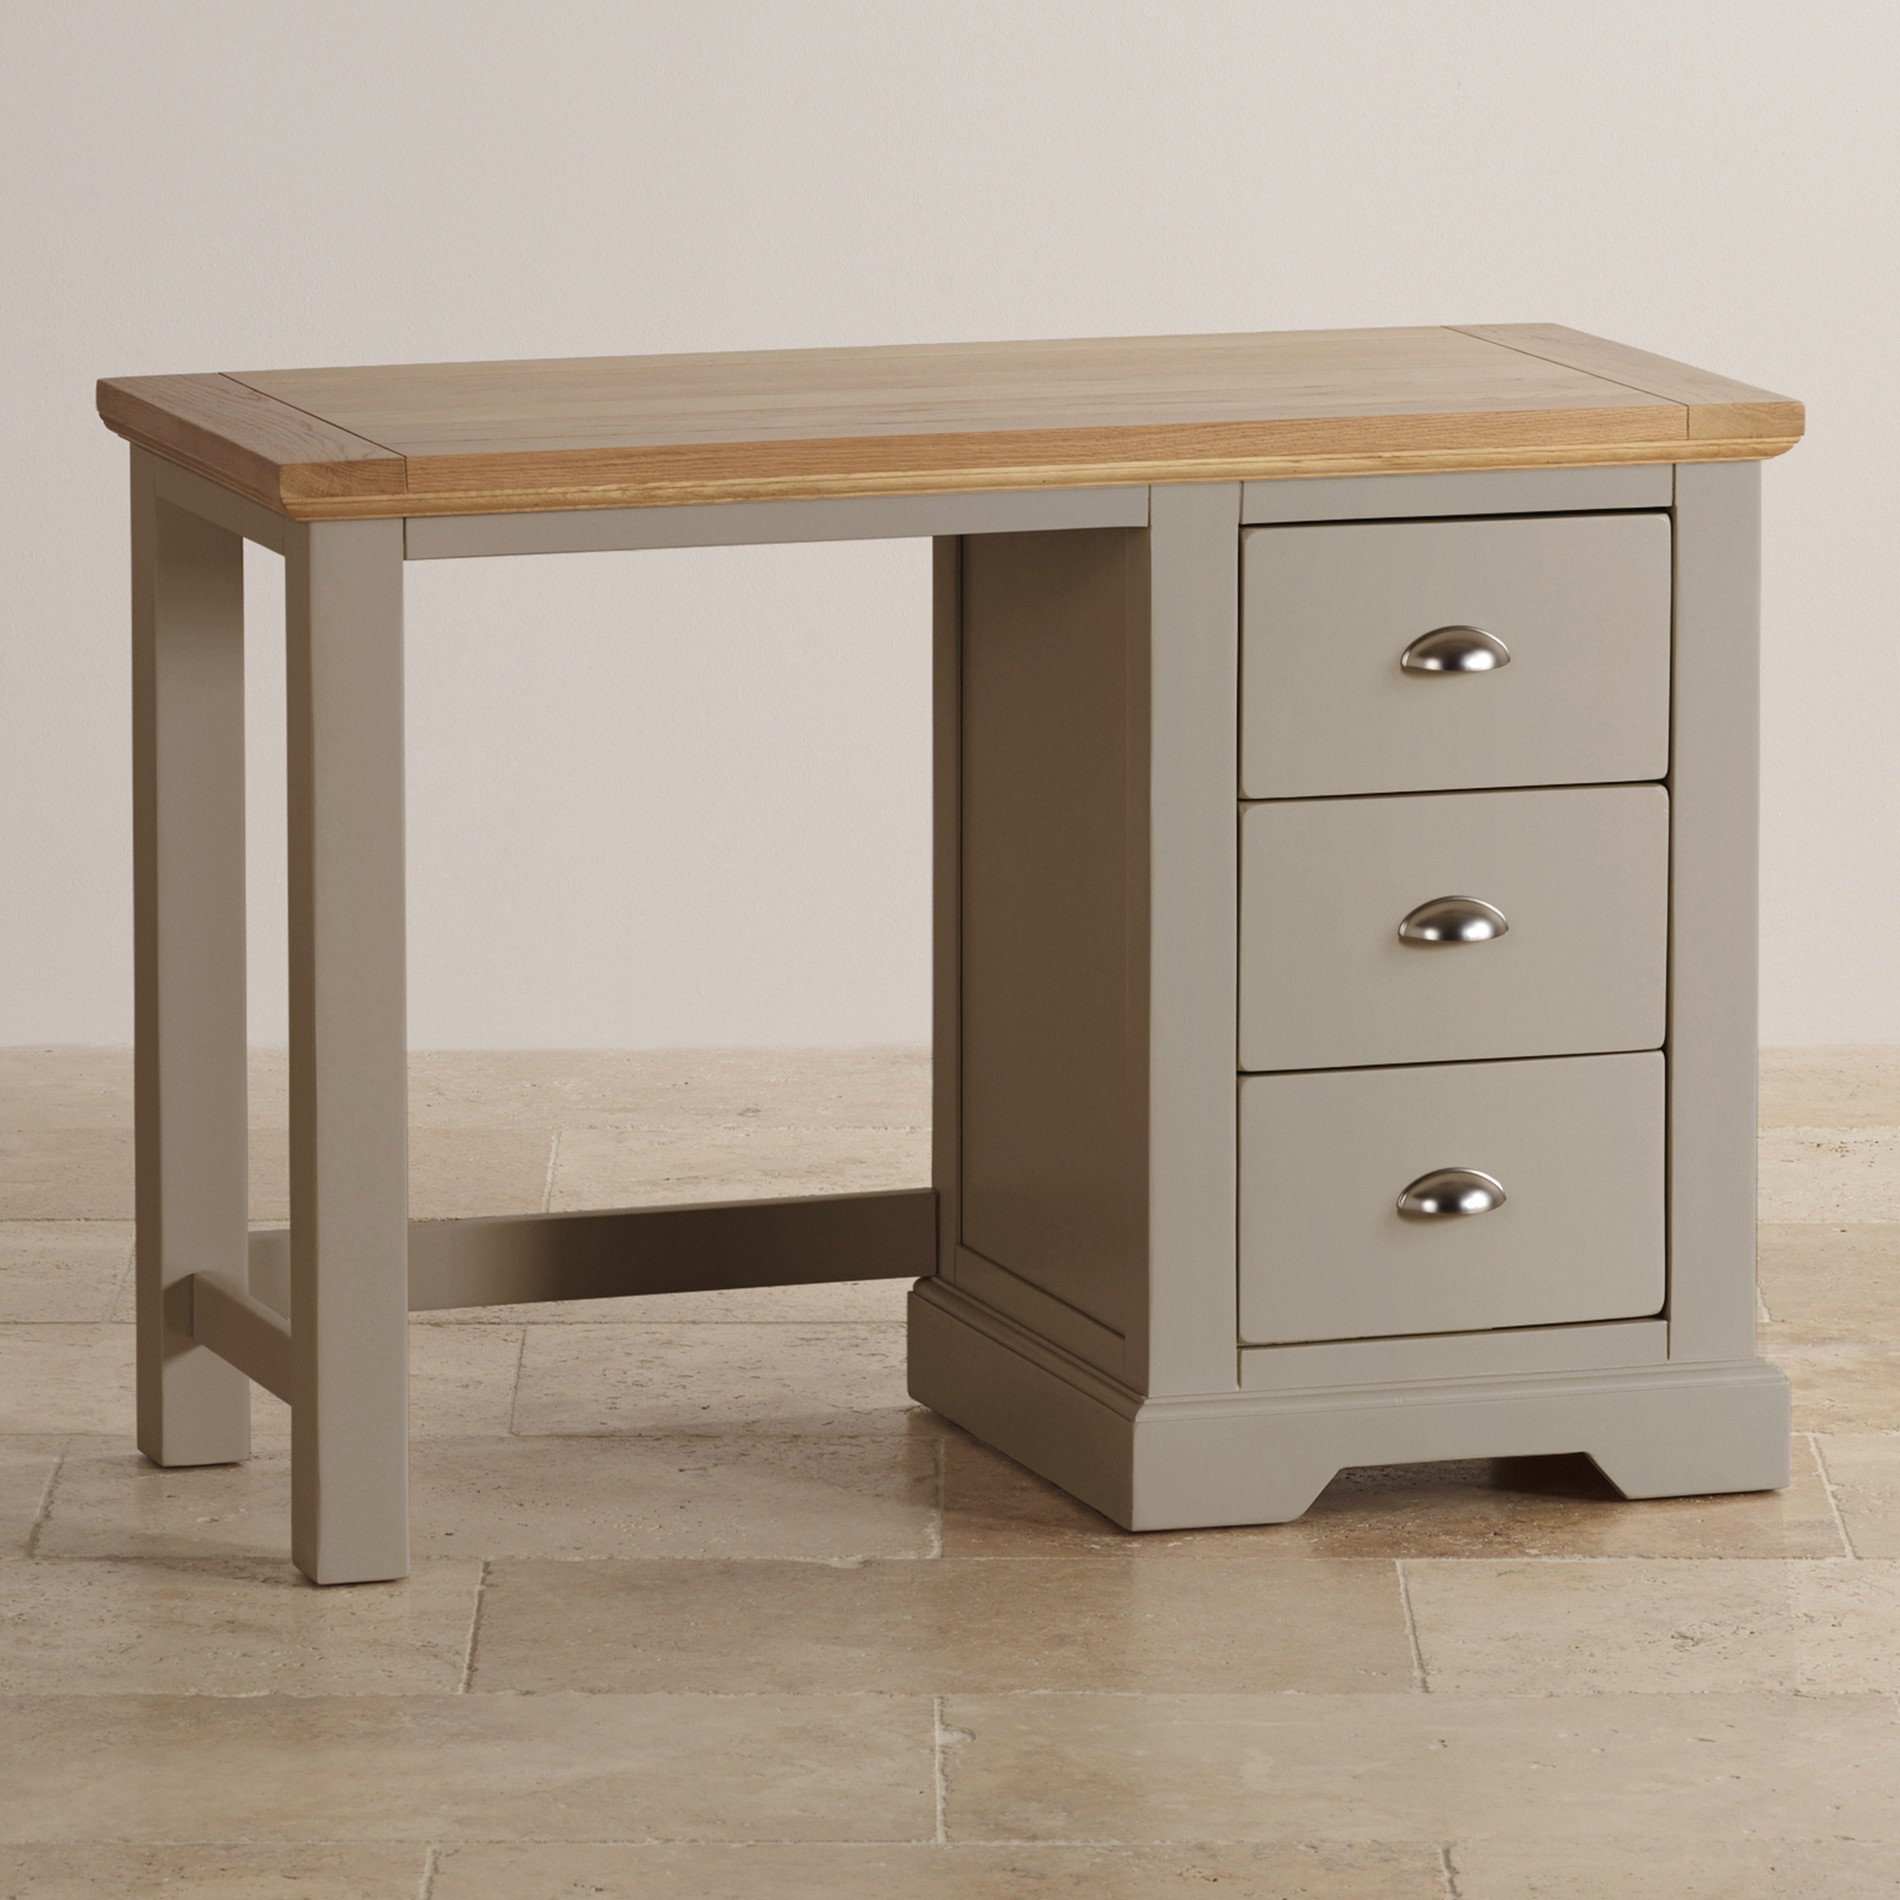 Natural oak and light grey painted dressing table